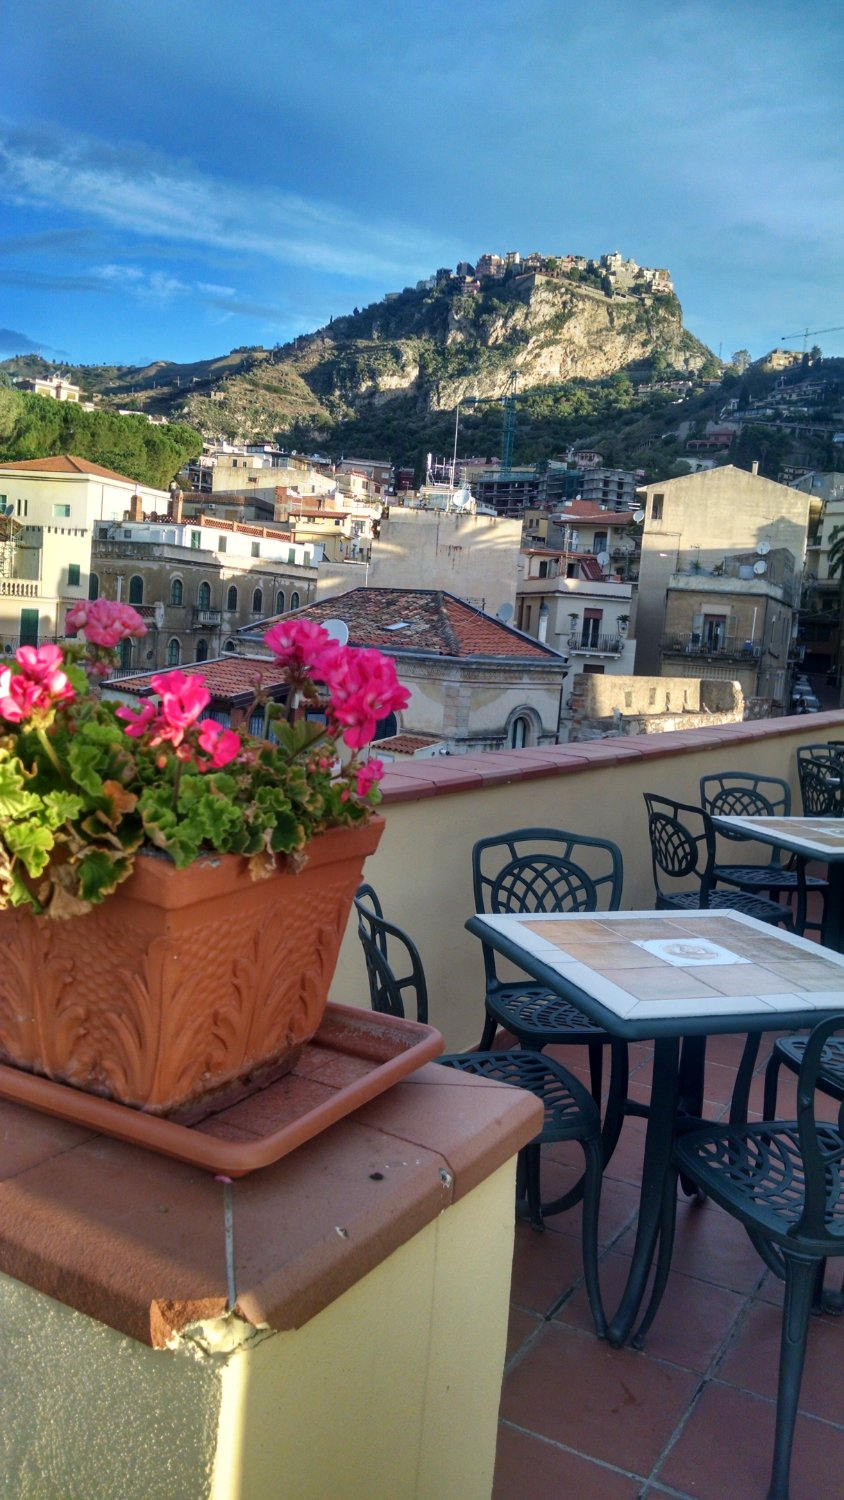 Hotel del corso taormina italien omd men och for Breakfast terrace